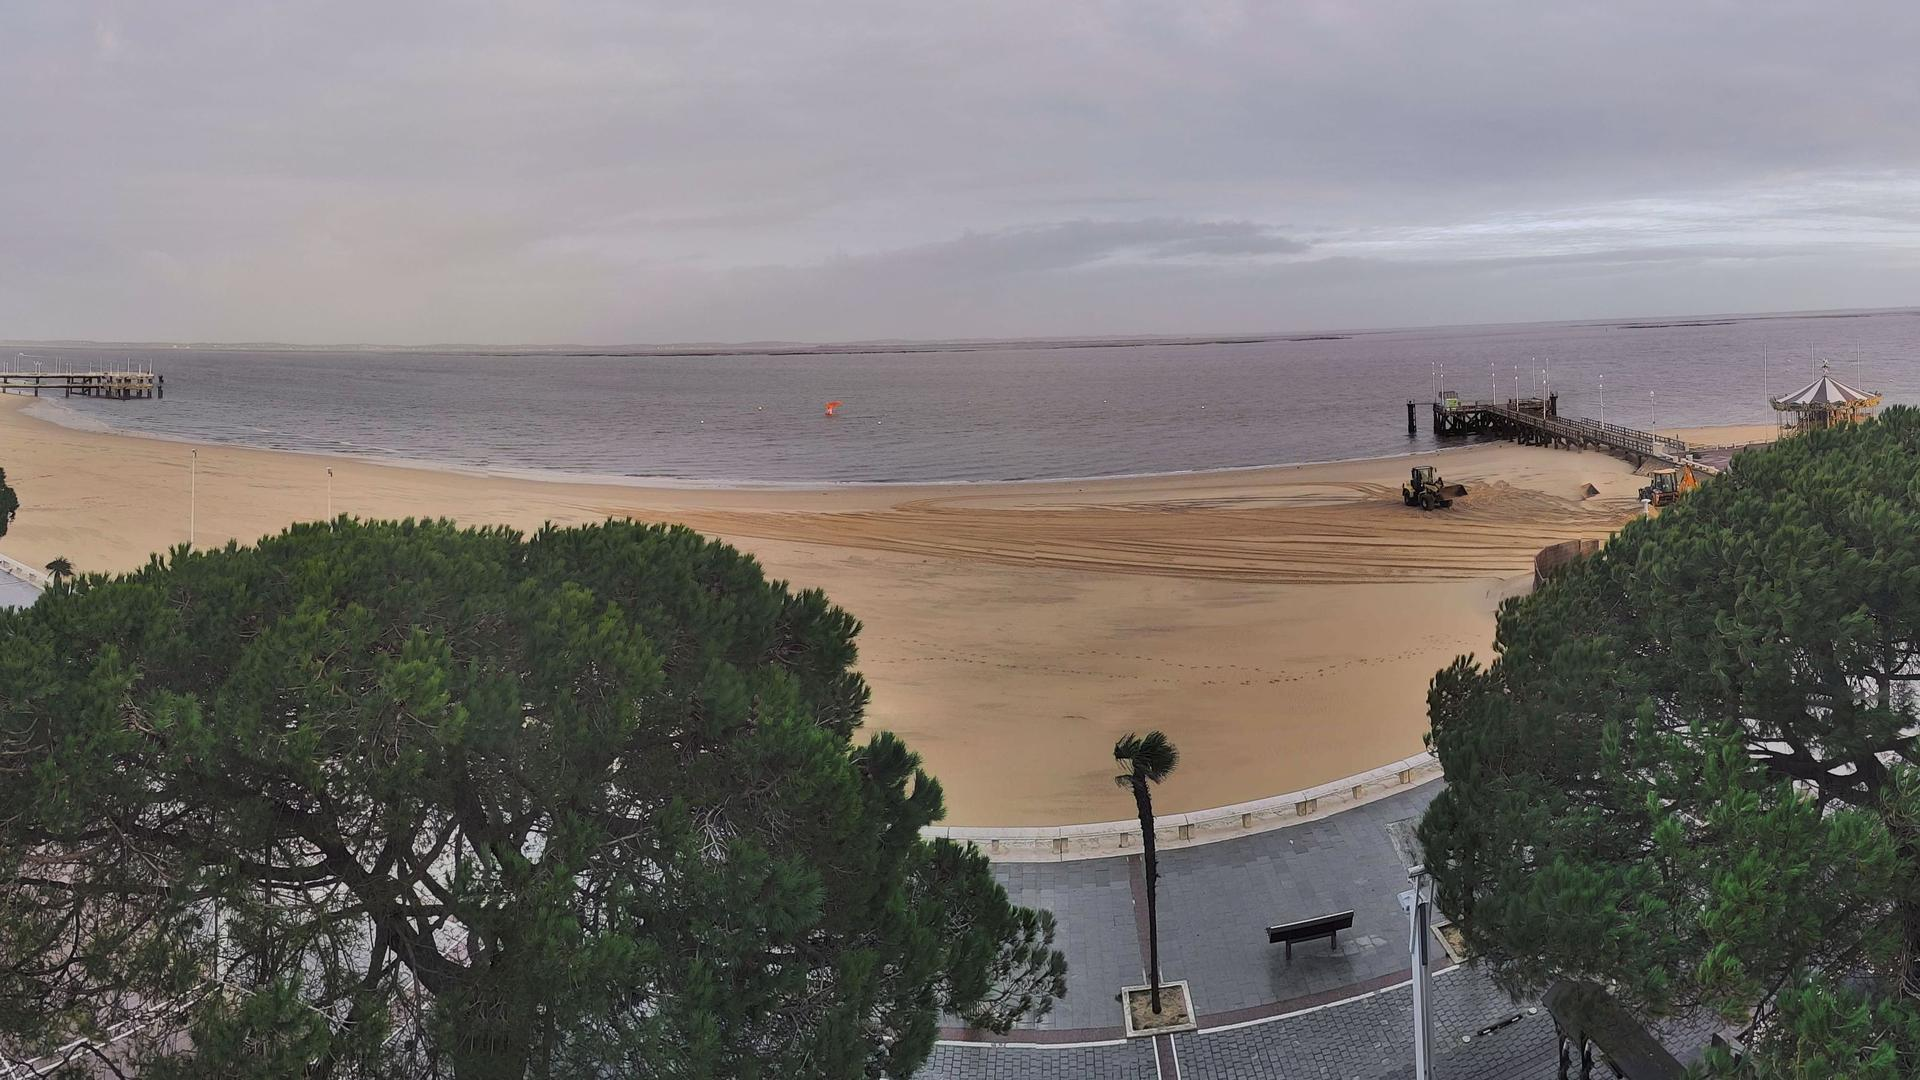 Webcam Arcachon: Panoramique HD